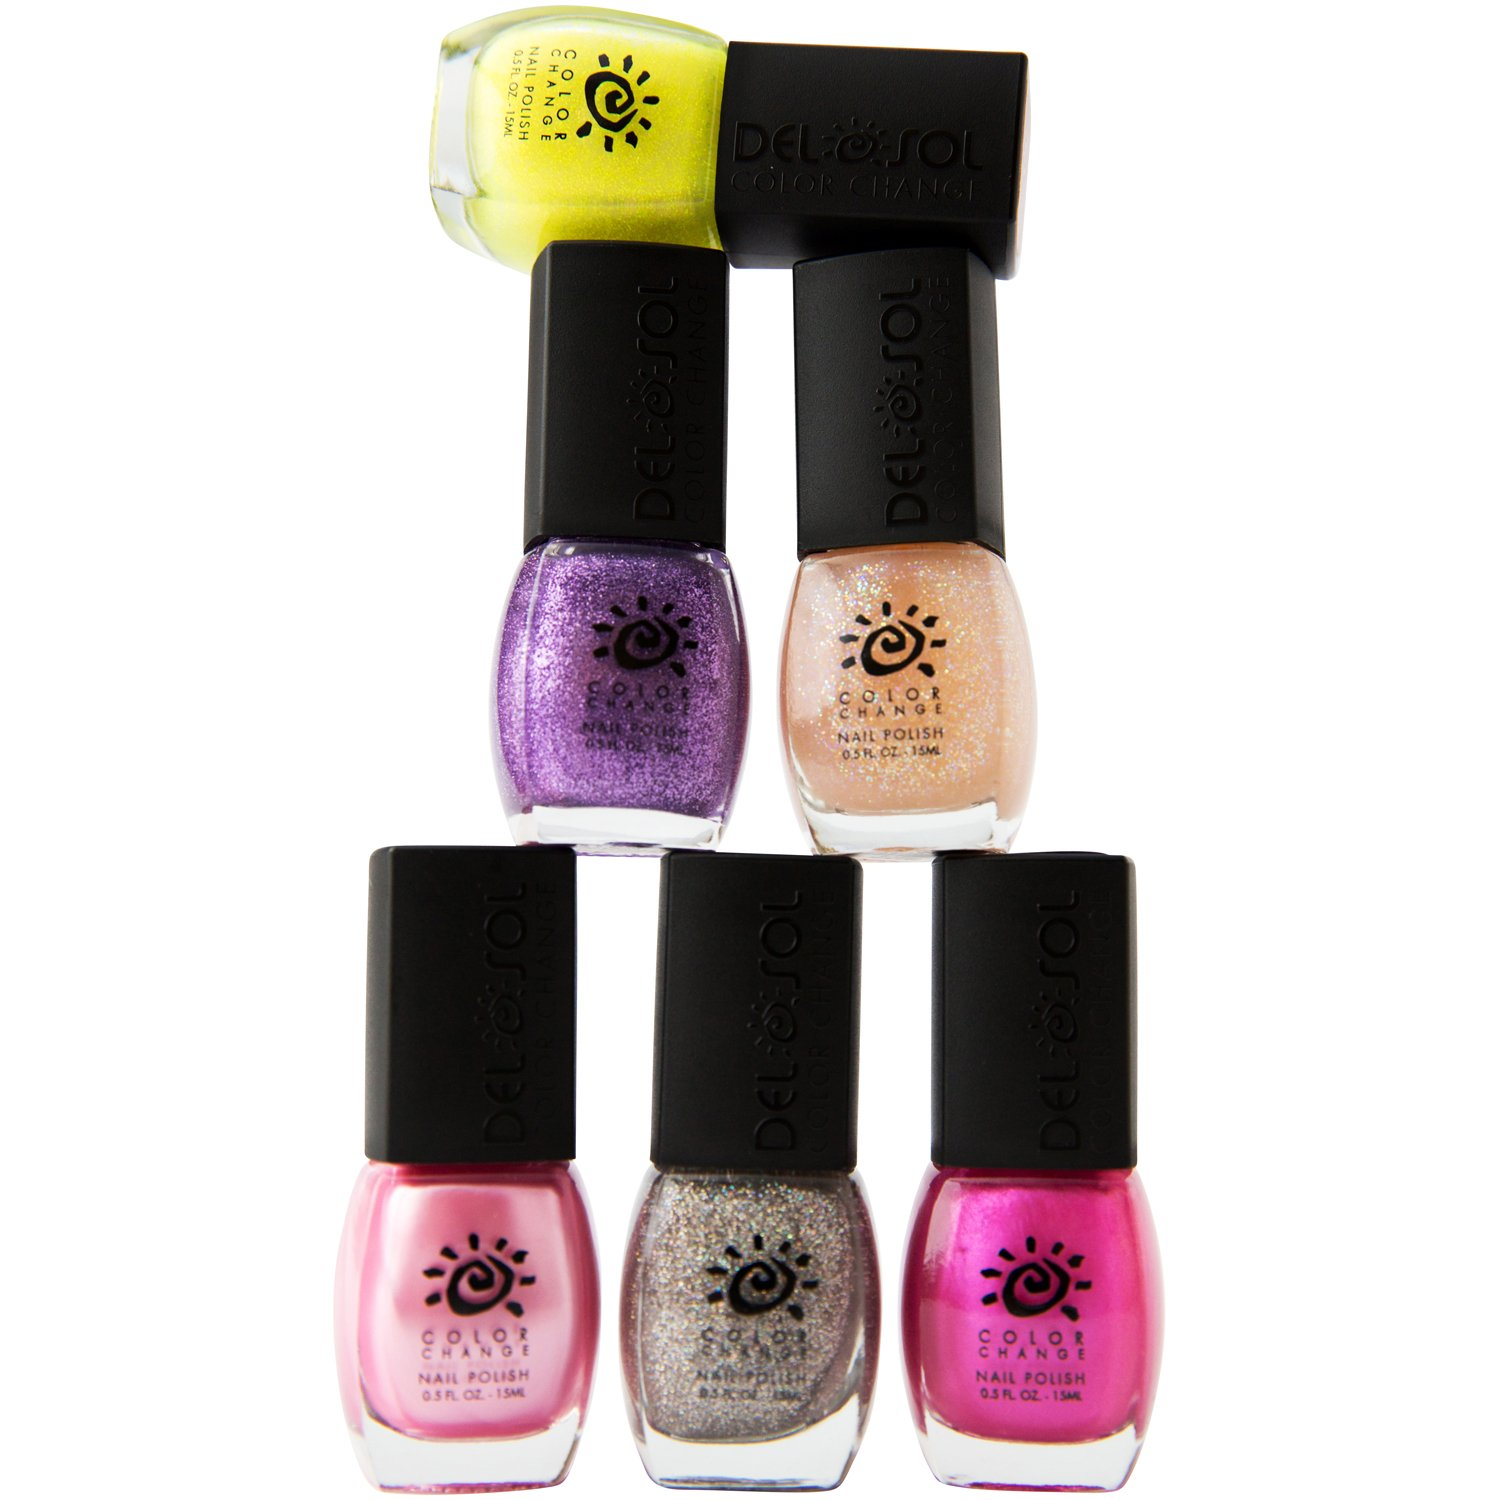 Amazon.com : Del Sol Color Changing Nail Polish - Summer 6 Pack - Set of High Quality, Nail Lacquer that Adjusts Hue in the Sun! : Beauty